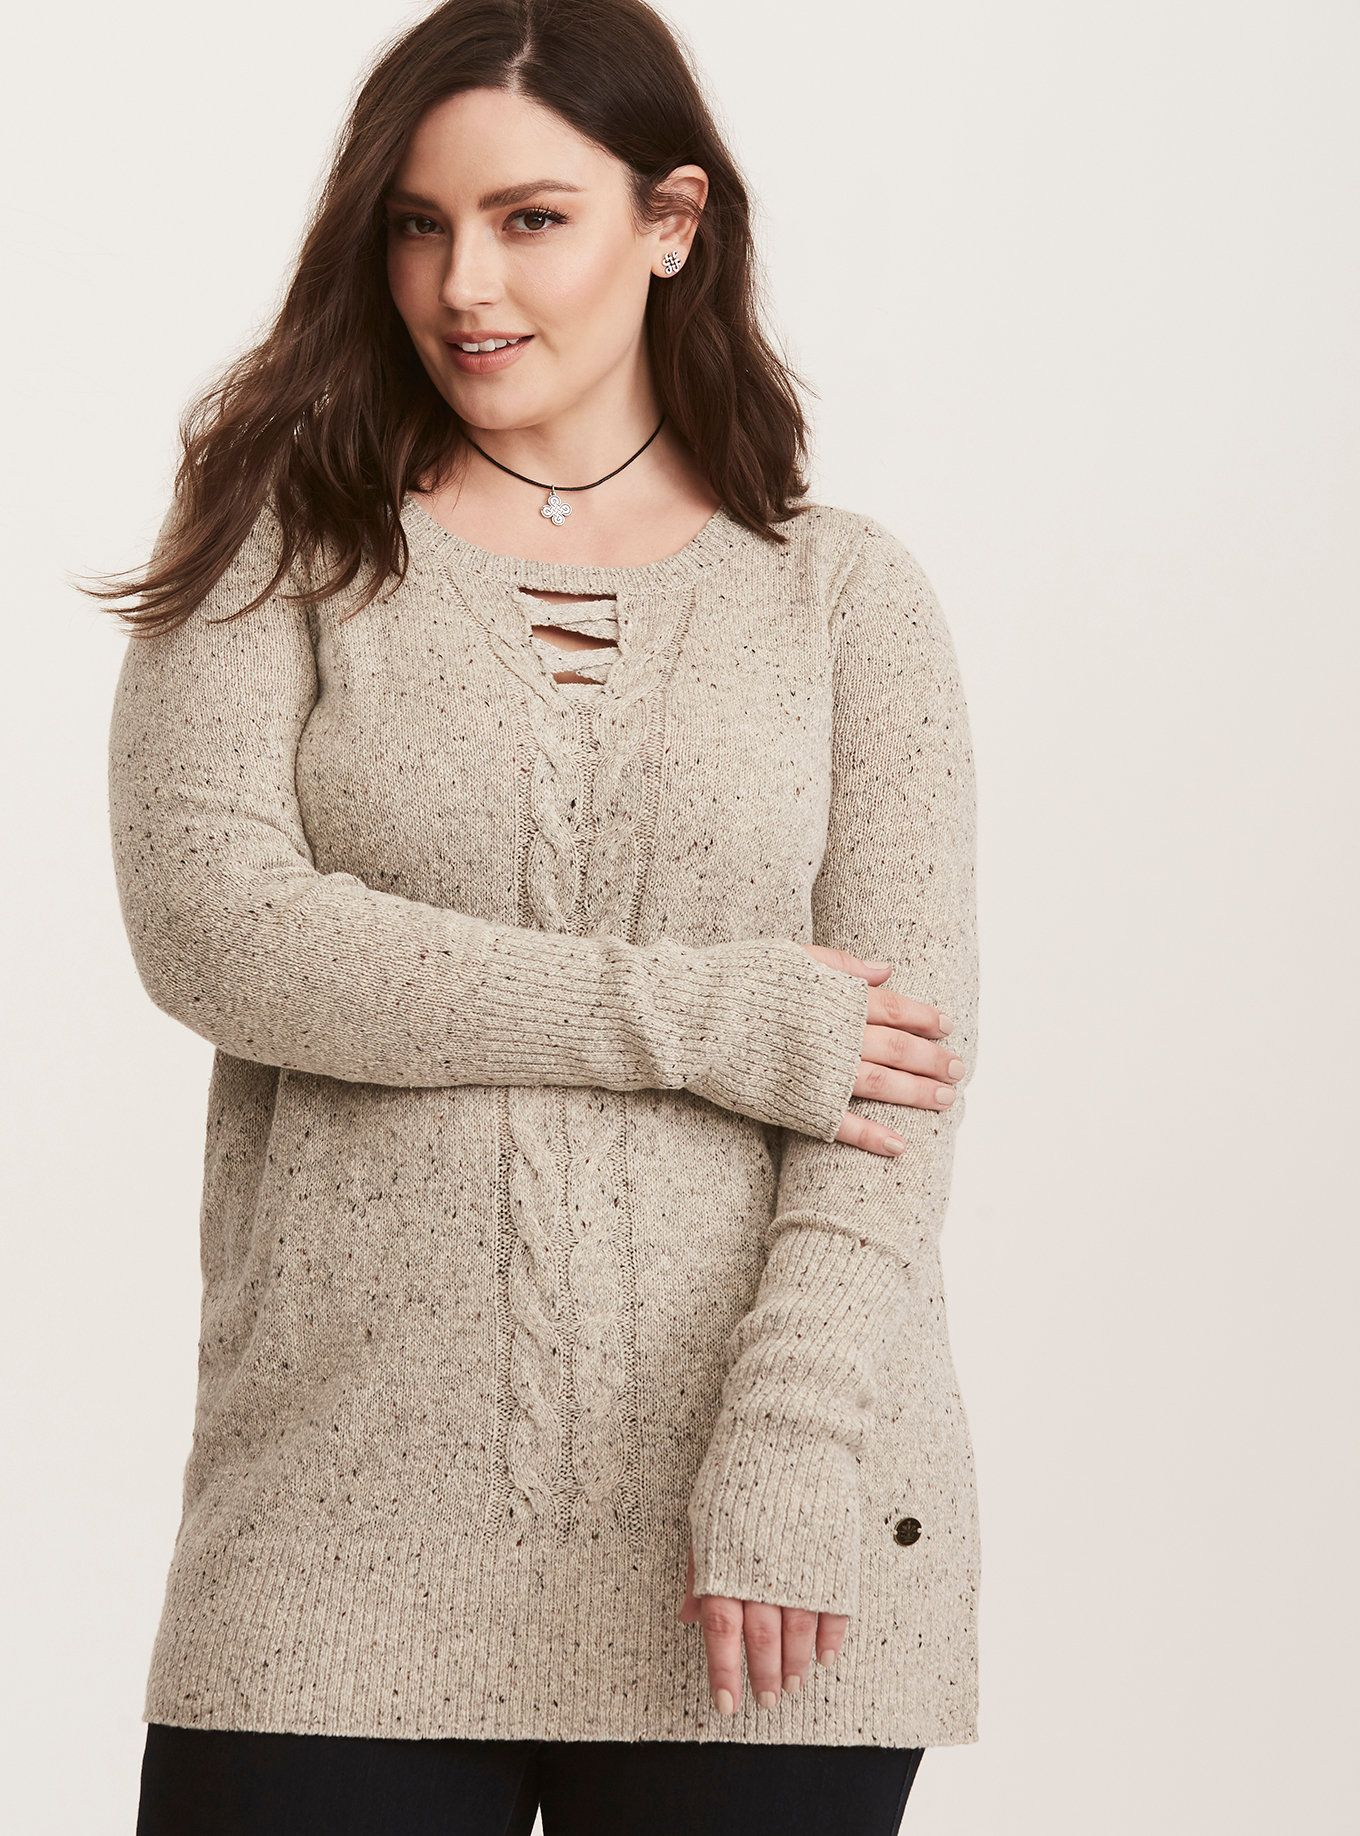 882bf60b2aba27 It s a lot easier to time-travel if you re cozy! This oatmeal marled knit  sweater gets the job done with cable knit detailing and a longer tunic  length.